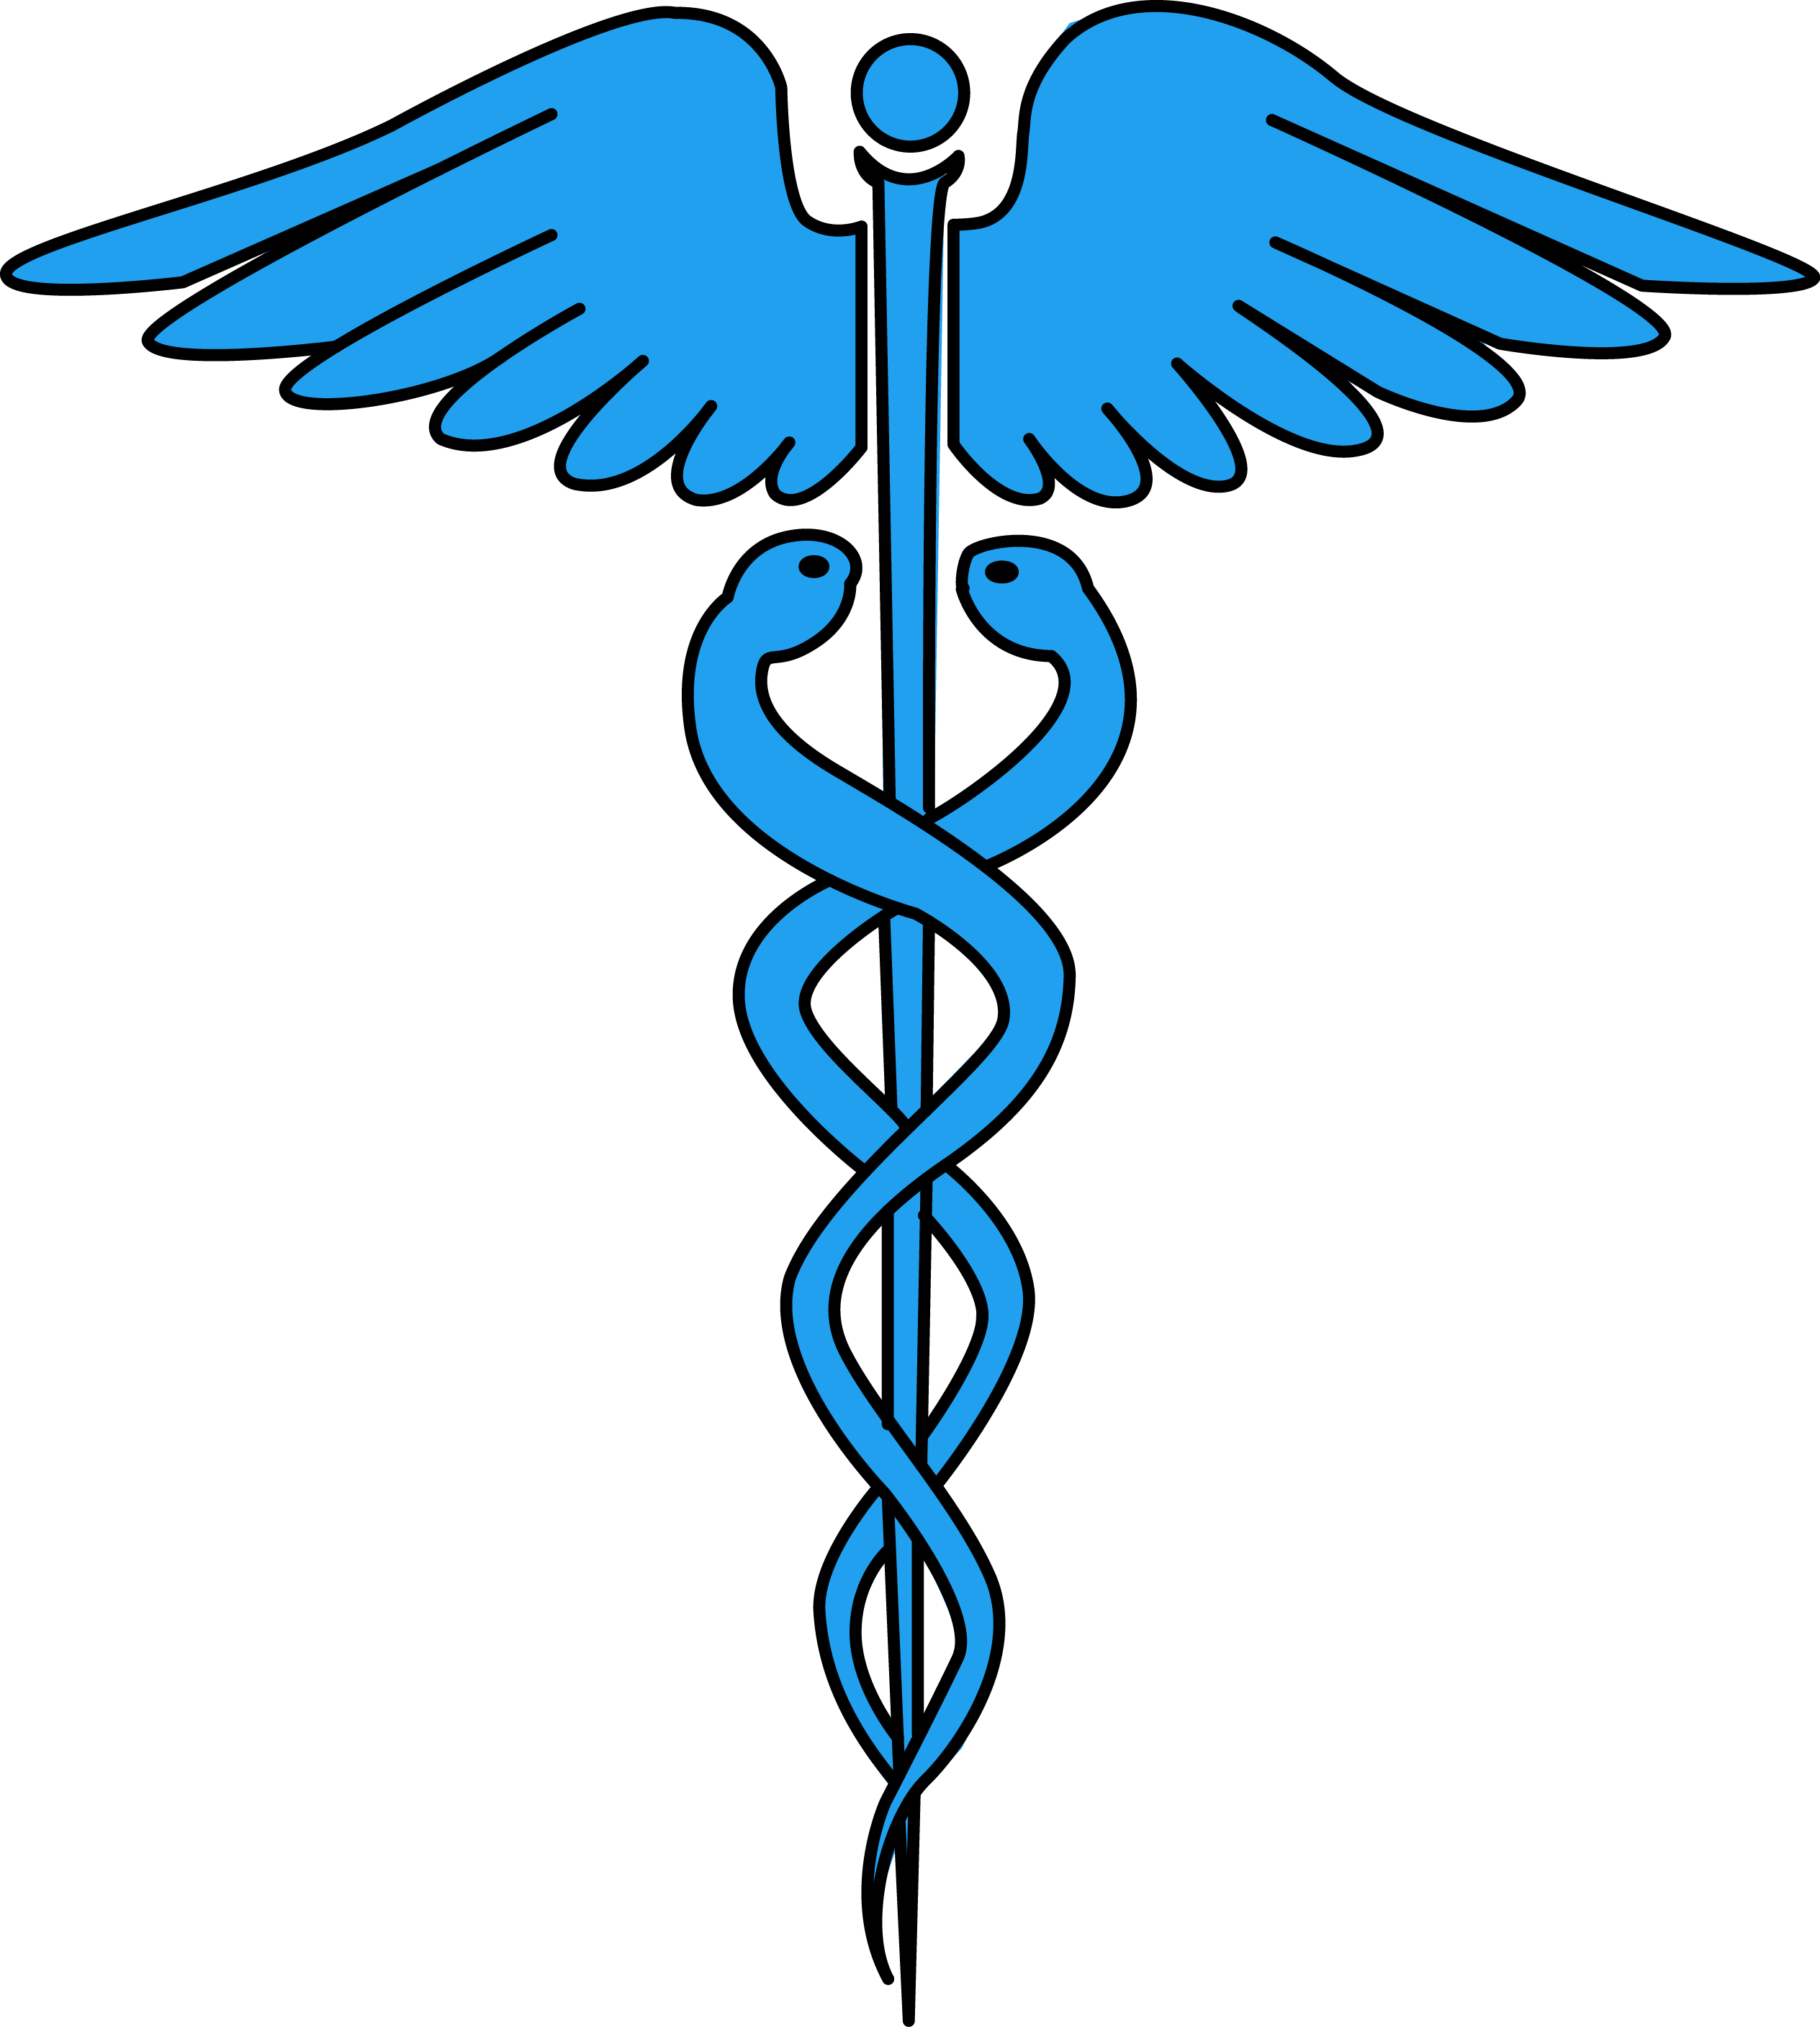 image for free caduceus medical symbol health high resolution clip rh pinterest com Veterinary Technician Symbol Official Veterinary Symbol